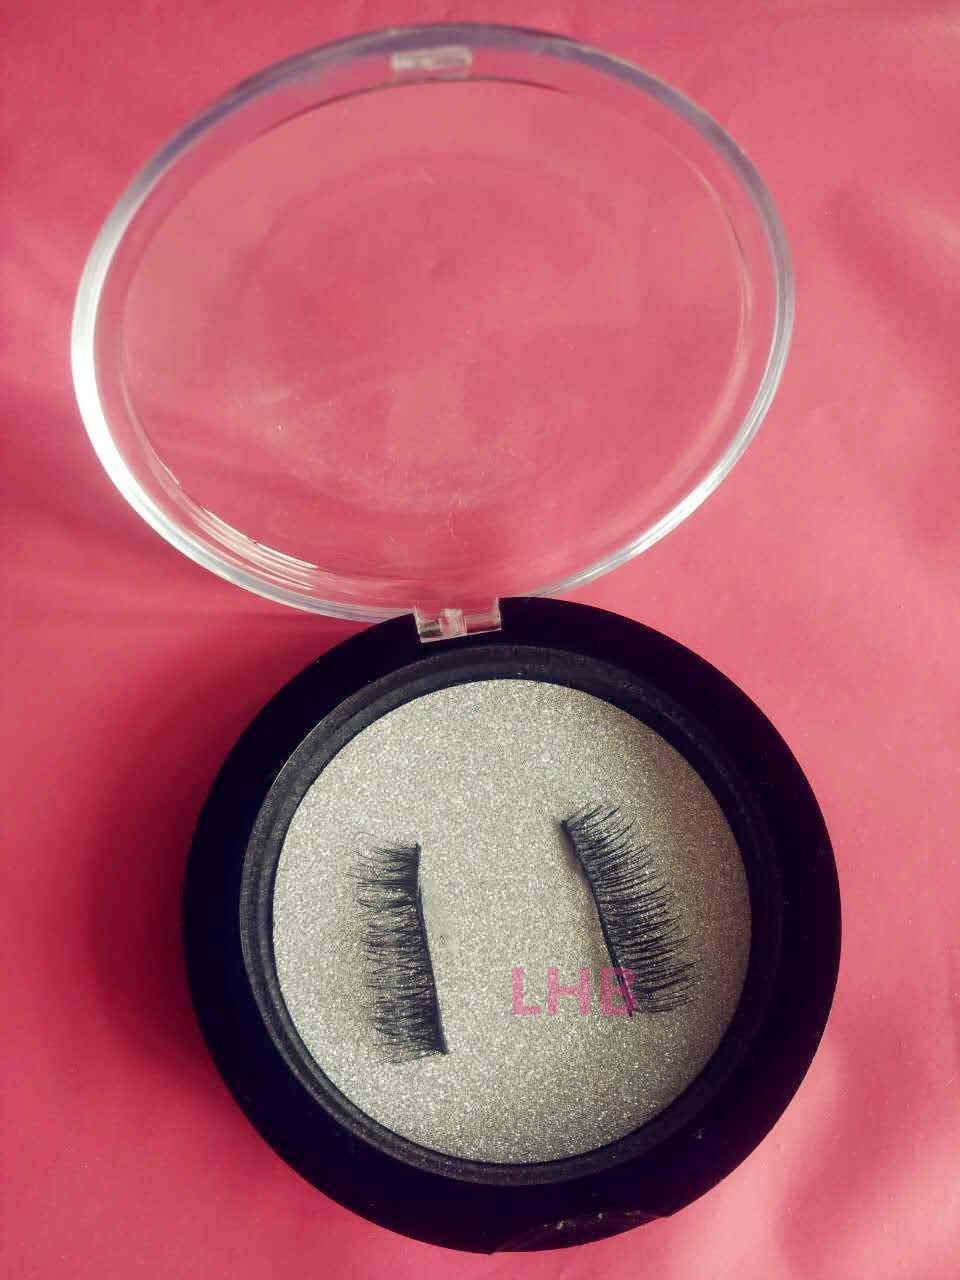 Magnetic lashes Natural Soft Makeup August new style(double magnet longer)